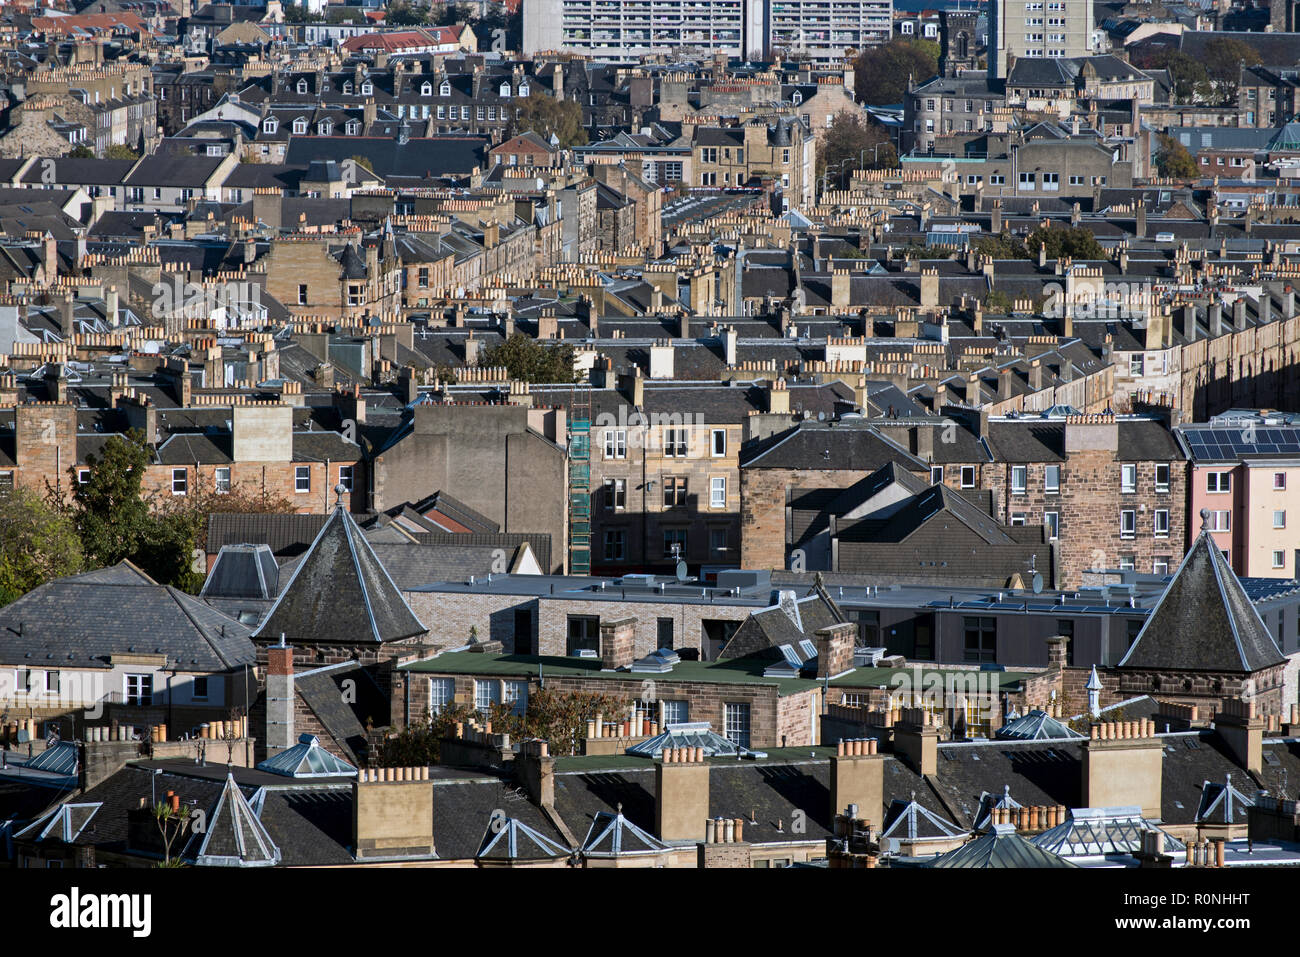 Looking north from Calton Hill over the rooftops of Leith, Edinburgh, Scotland, UK. - Stock Image